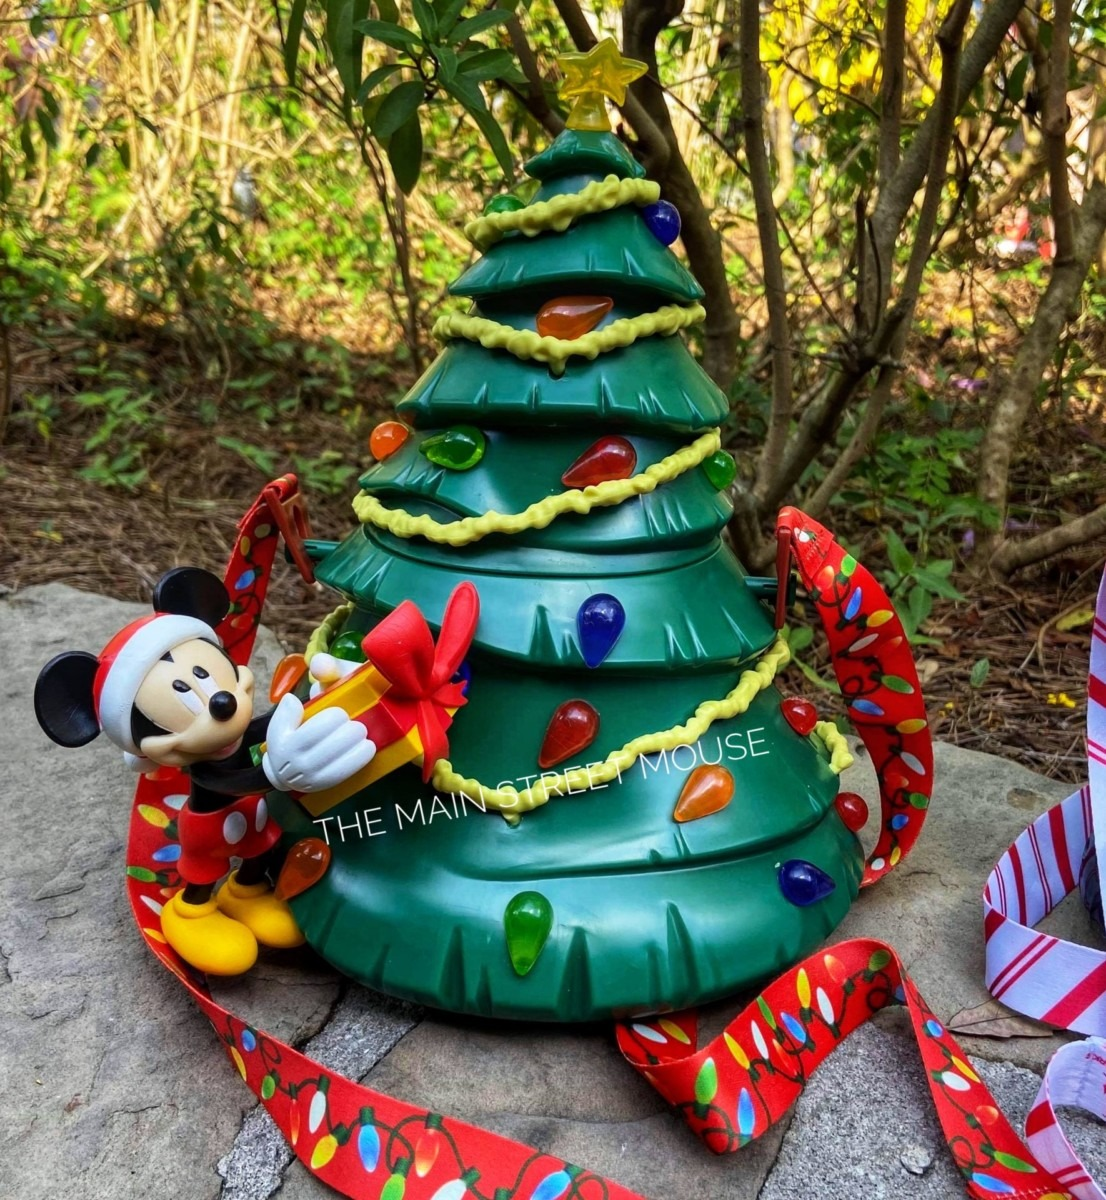 Two New Holiday Popcorn Buckets at Disney Parks! 1